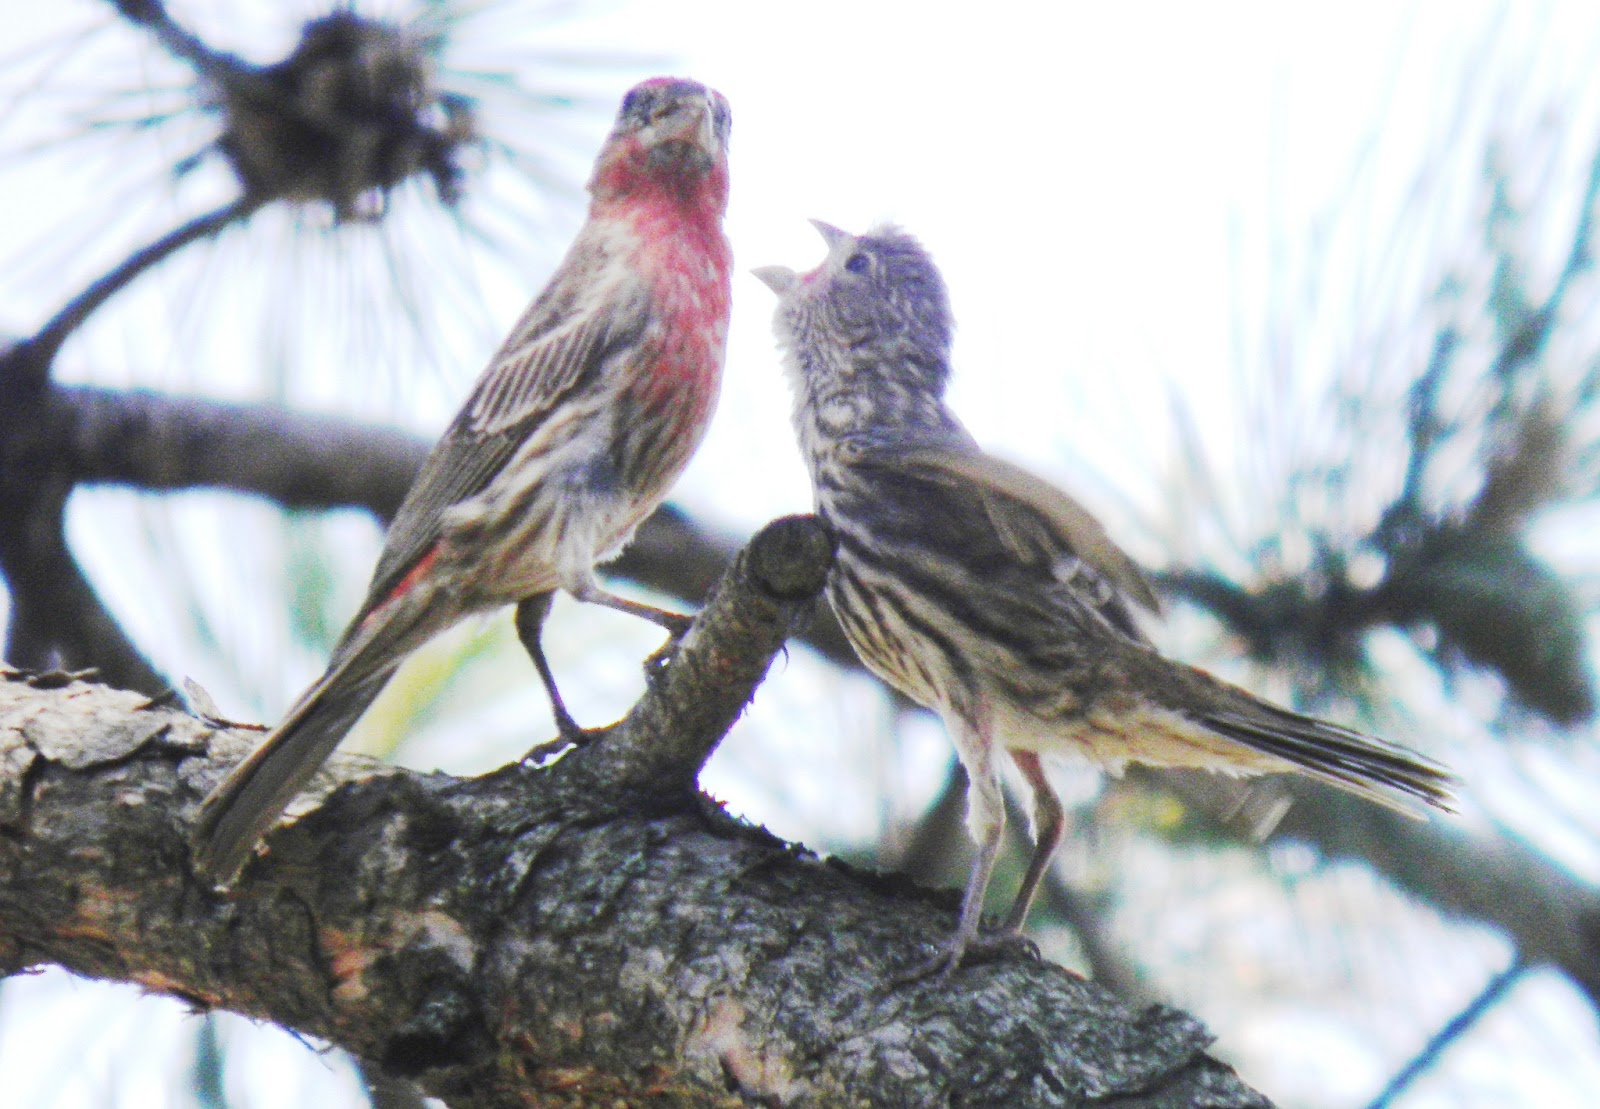 wild birds unlimited: the difference was between the house finch